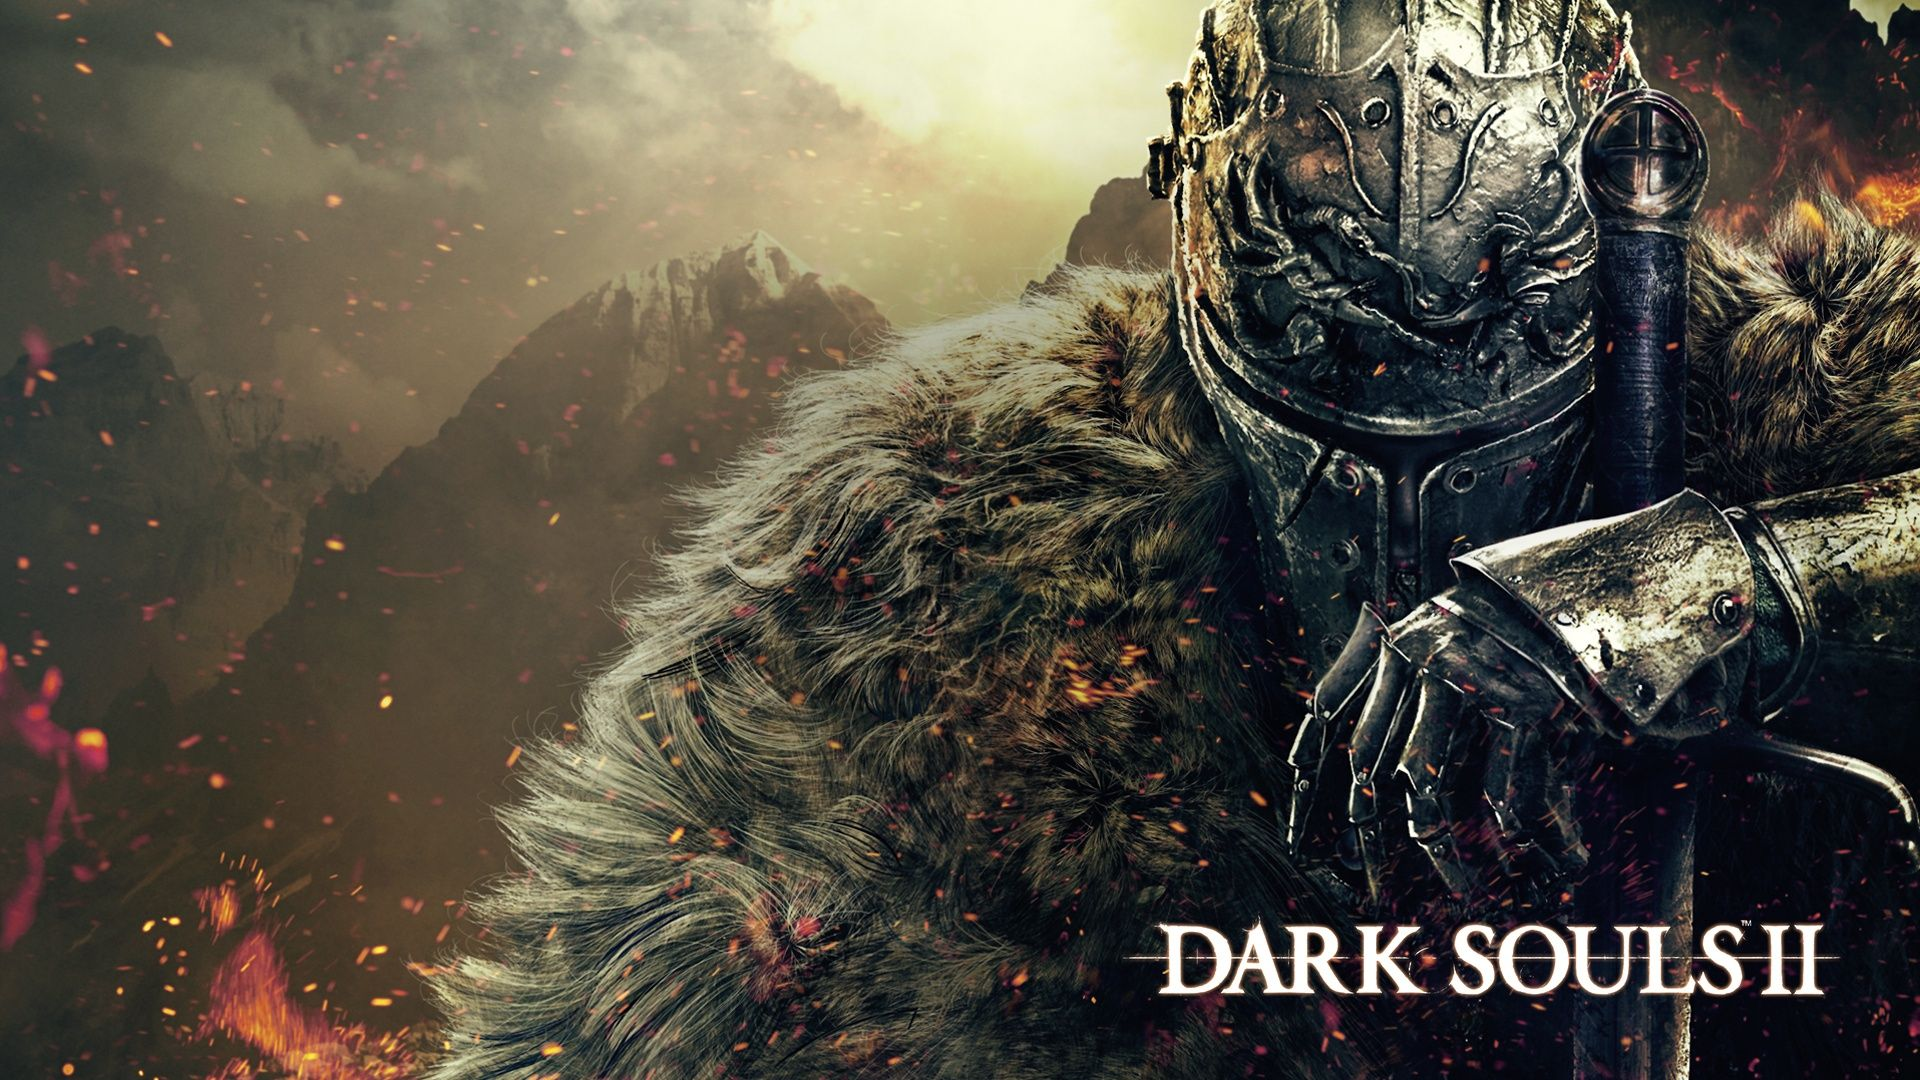 1920x1080 dark souls 2 wallpaper, dark souls background